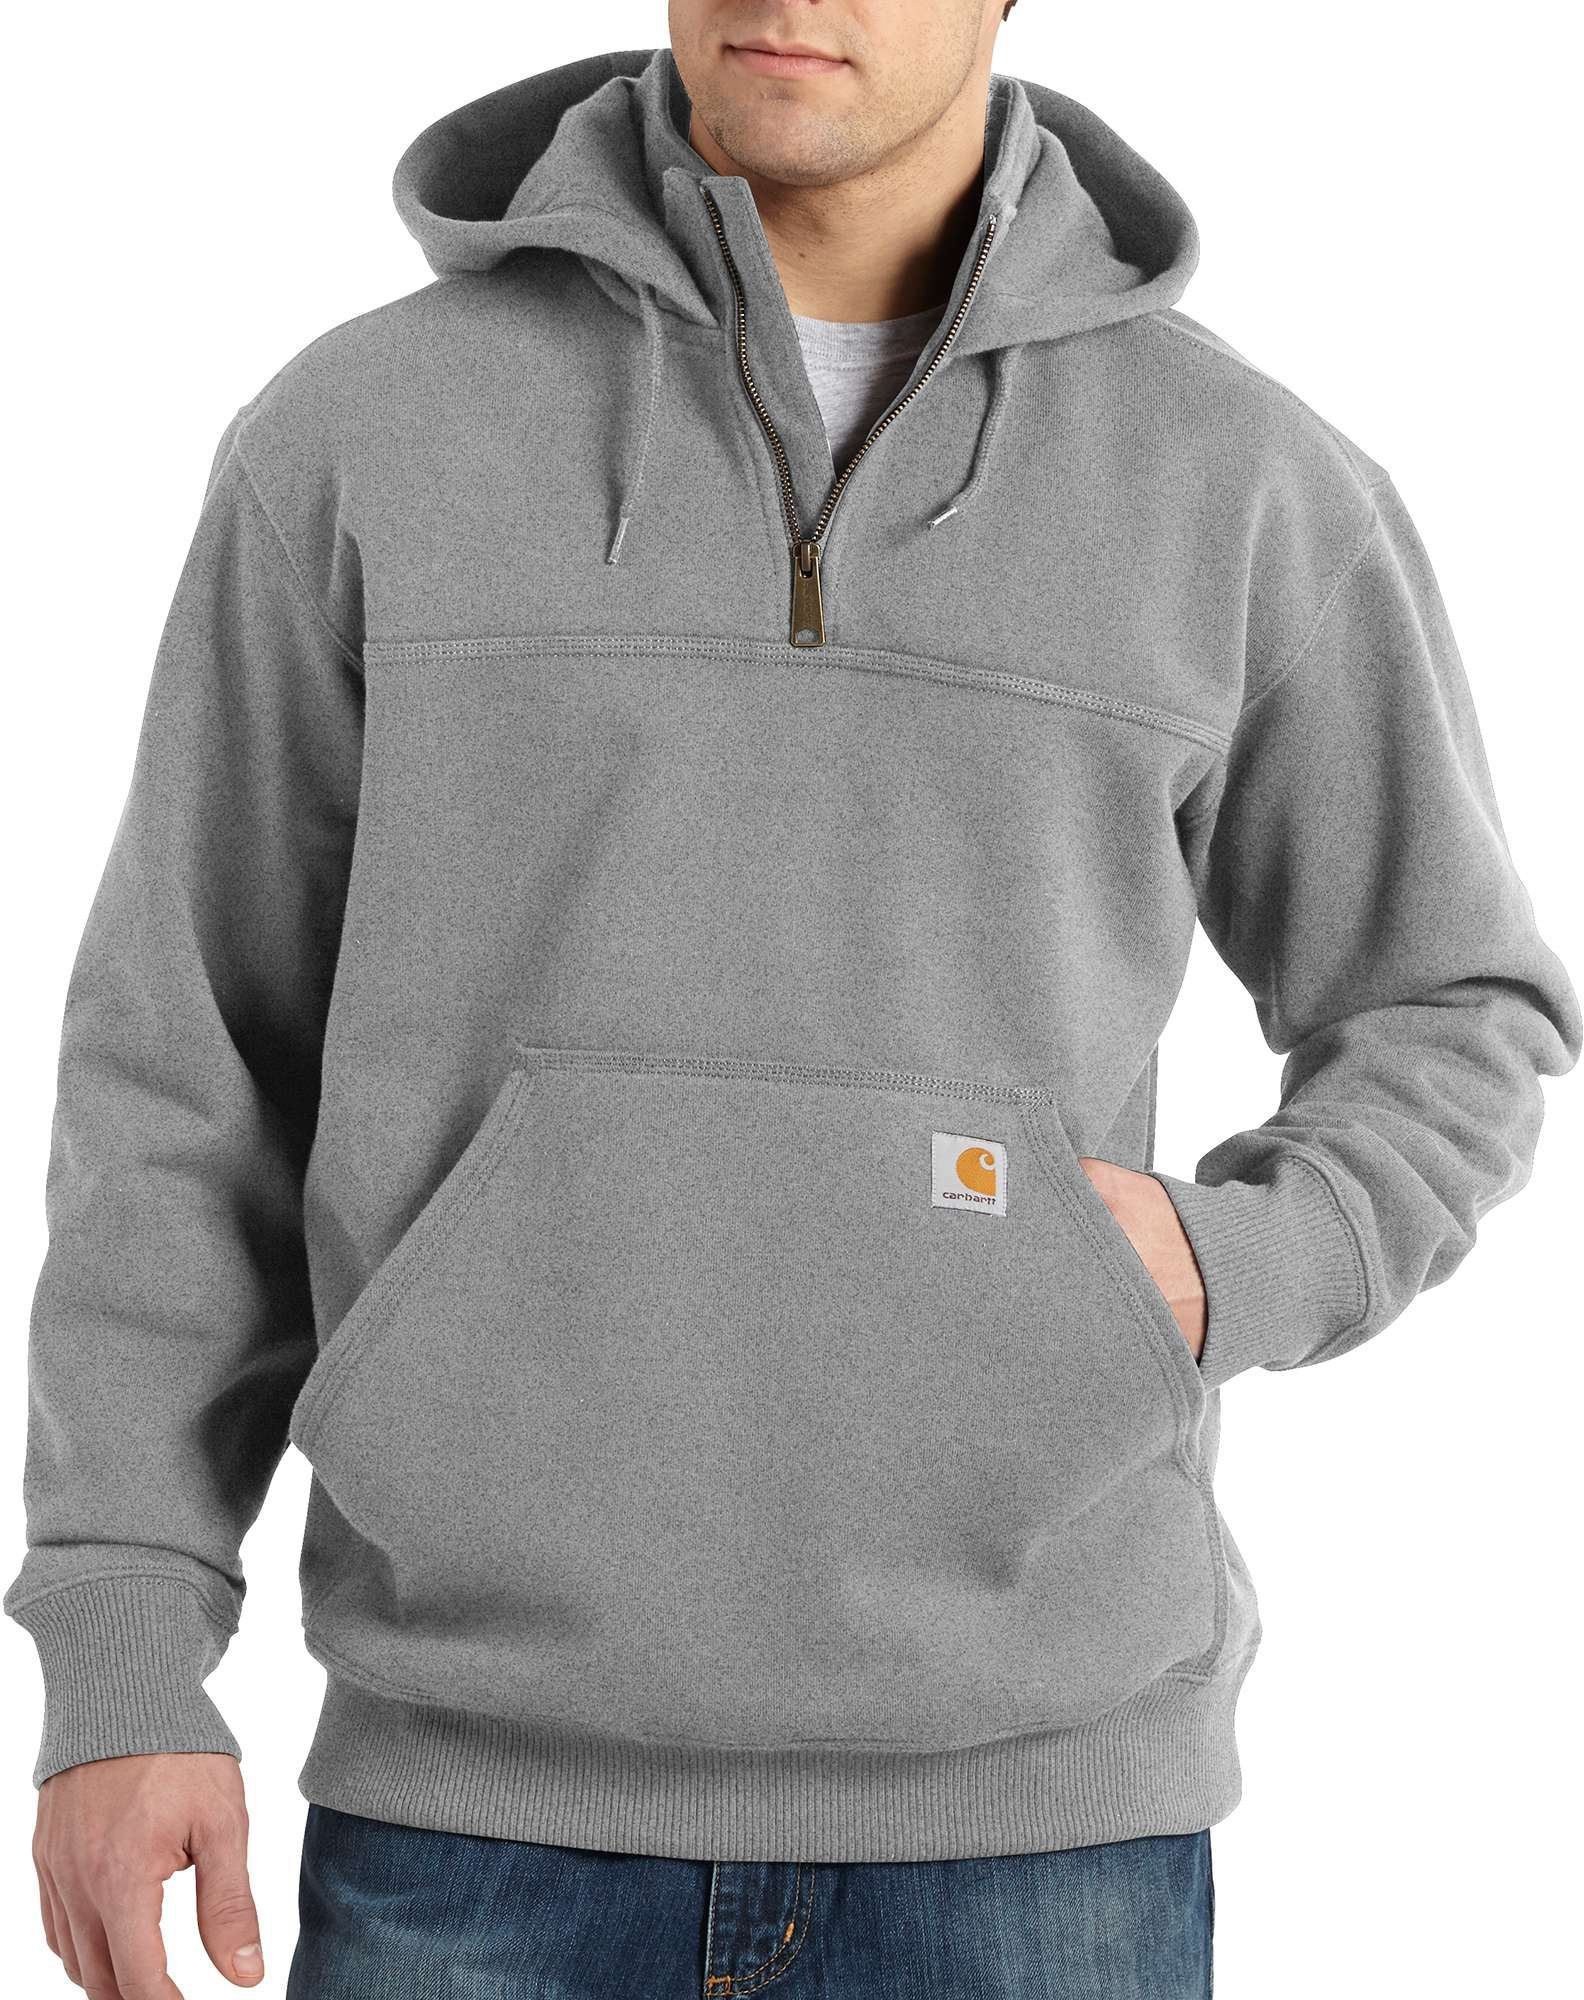 Half Zip Sweatshirts & Hoodies | DICK'S Sporting Goods